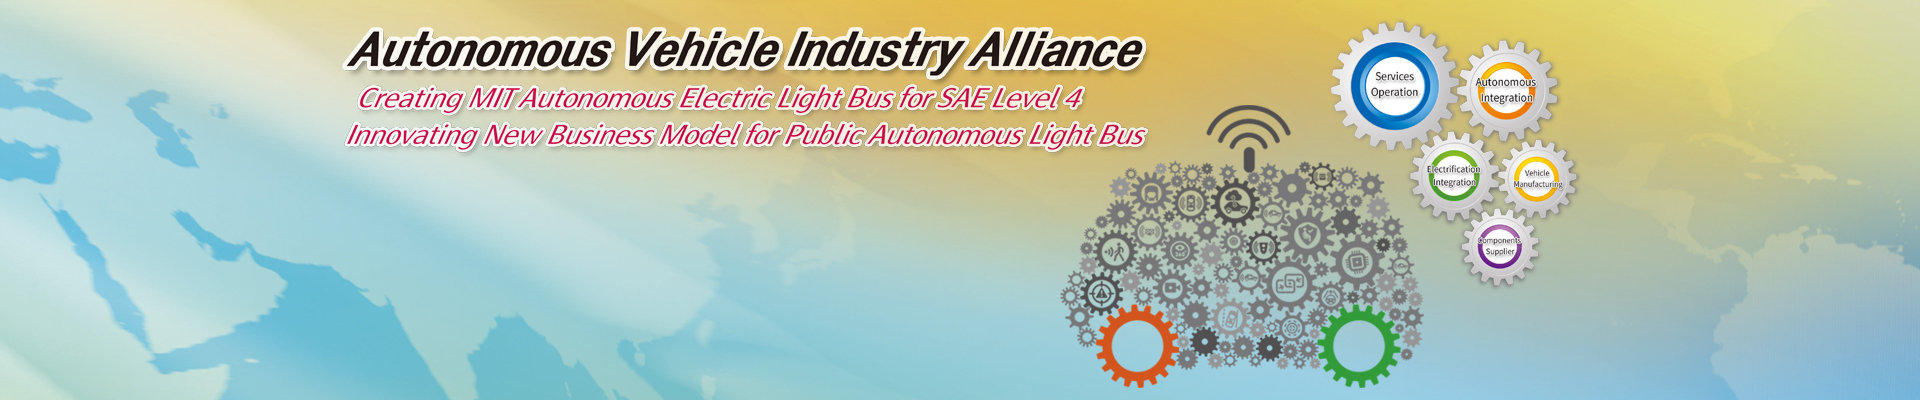 Autonomous Vehicle Industry Alliance